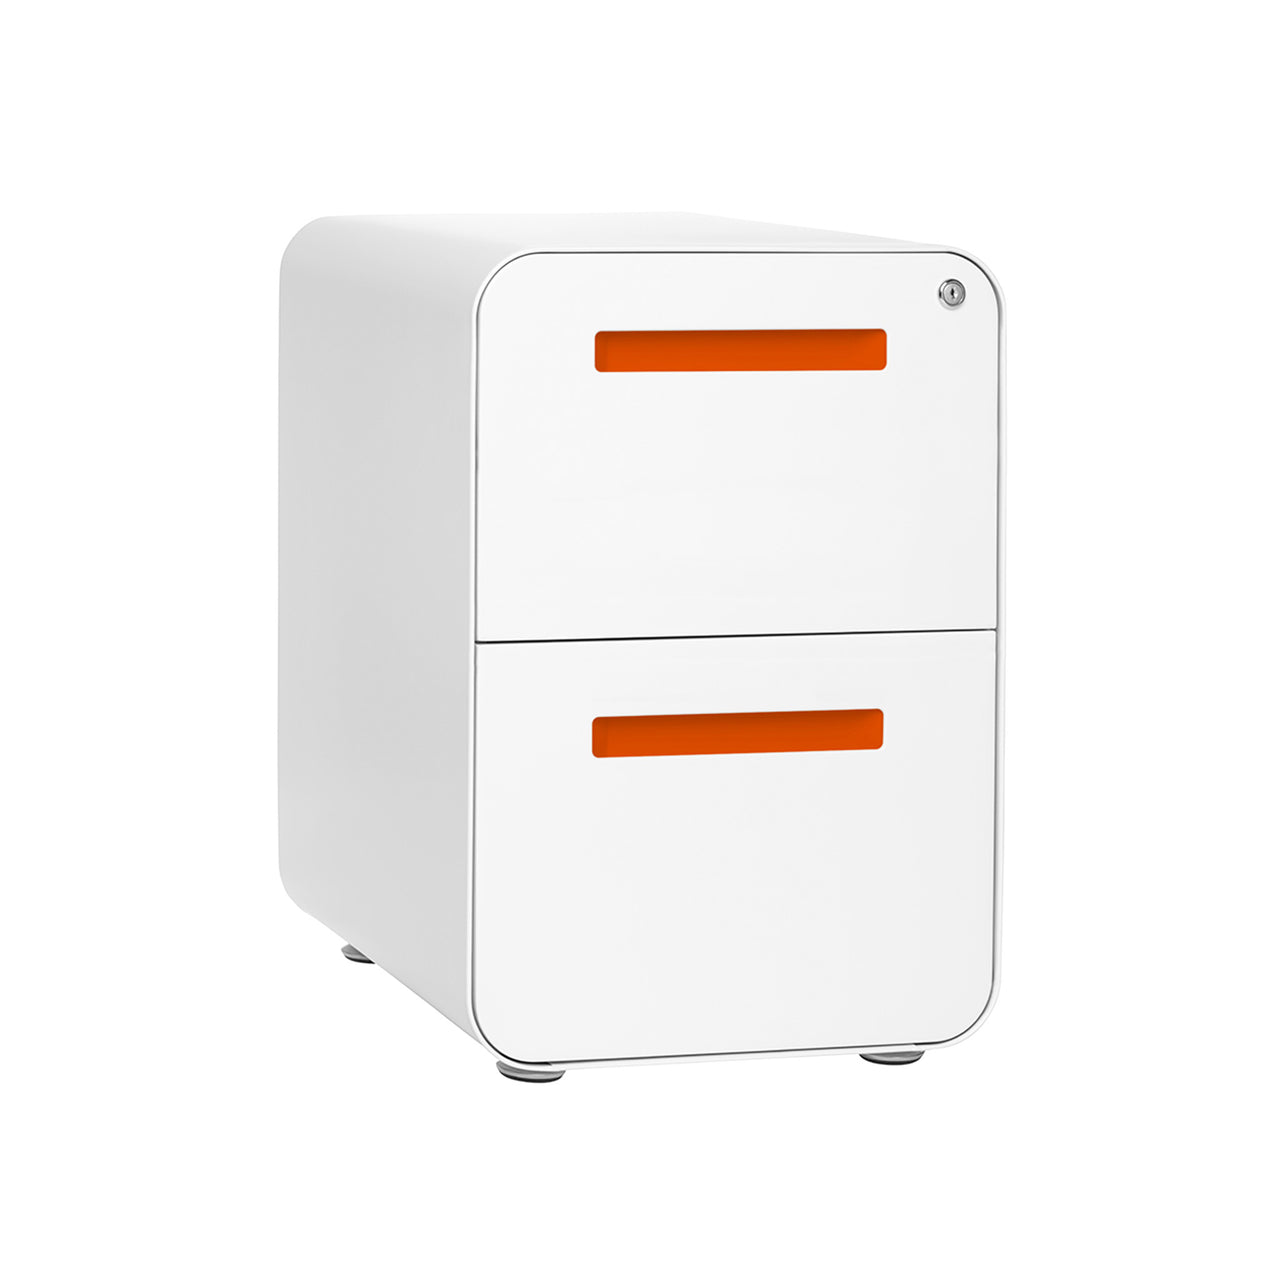 Stockpile Curve 2-Drawer File Cabinet (White/Orange)